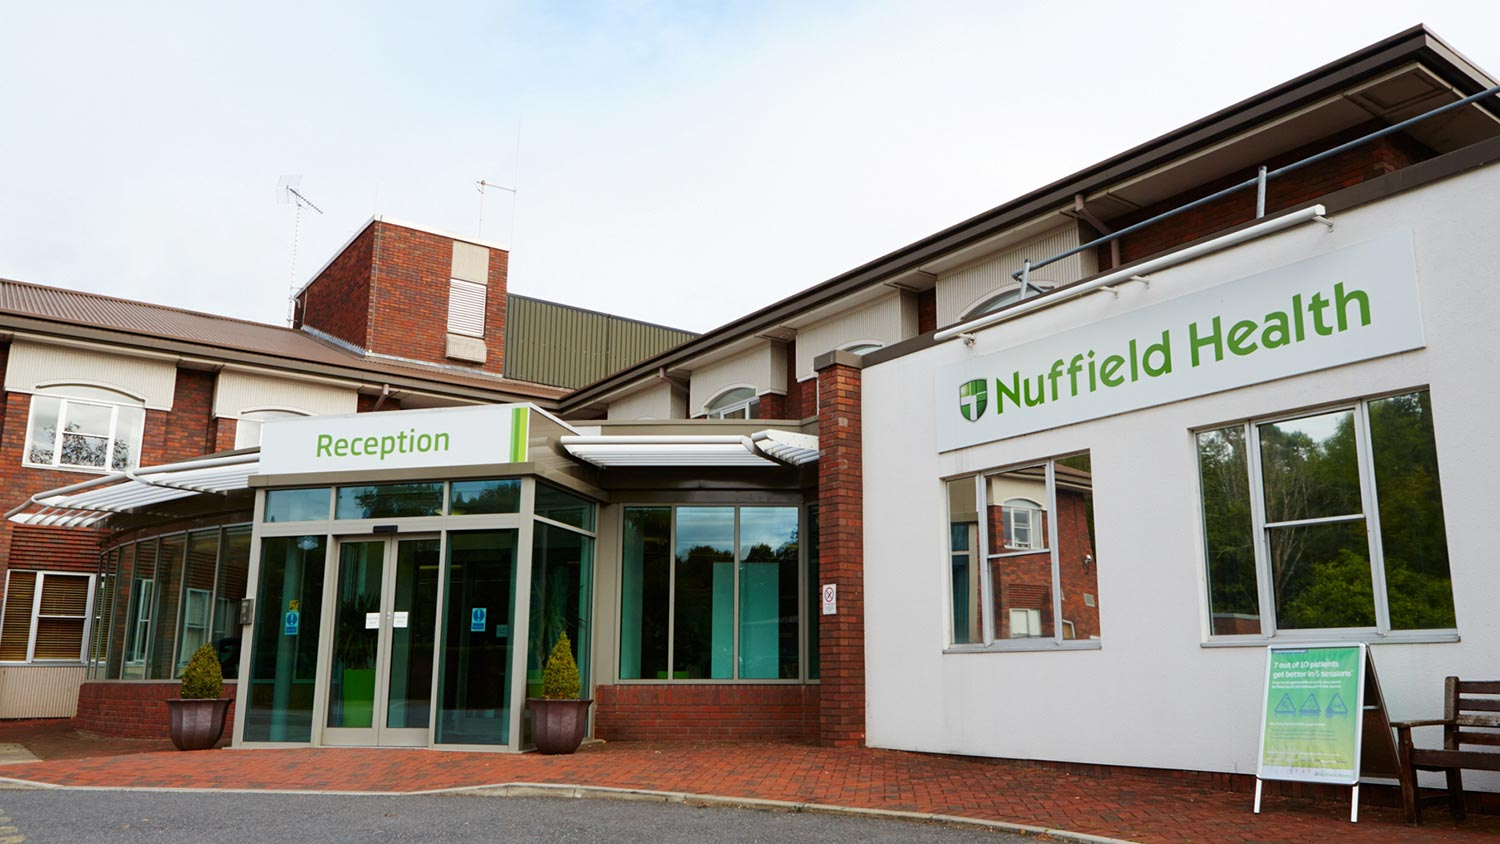 Nuffield Health Chester, The Grosvenor Hospital